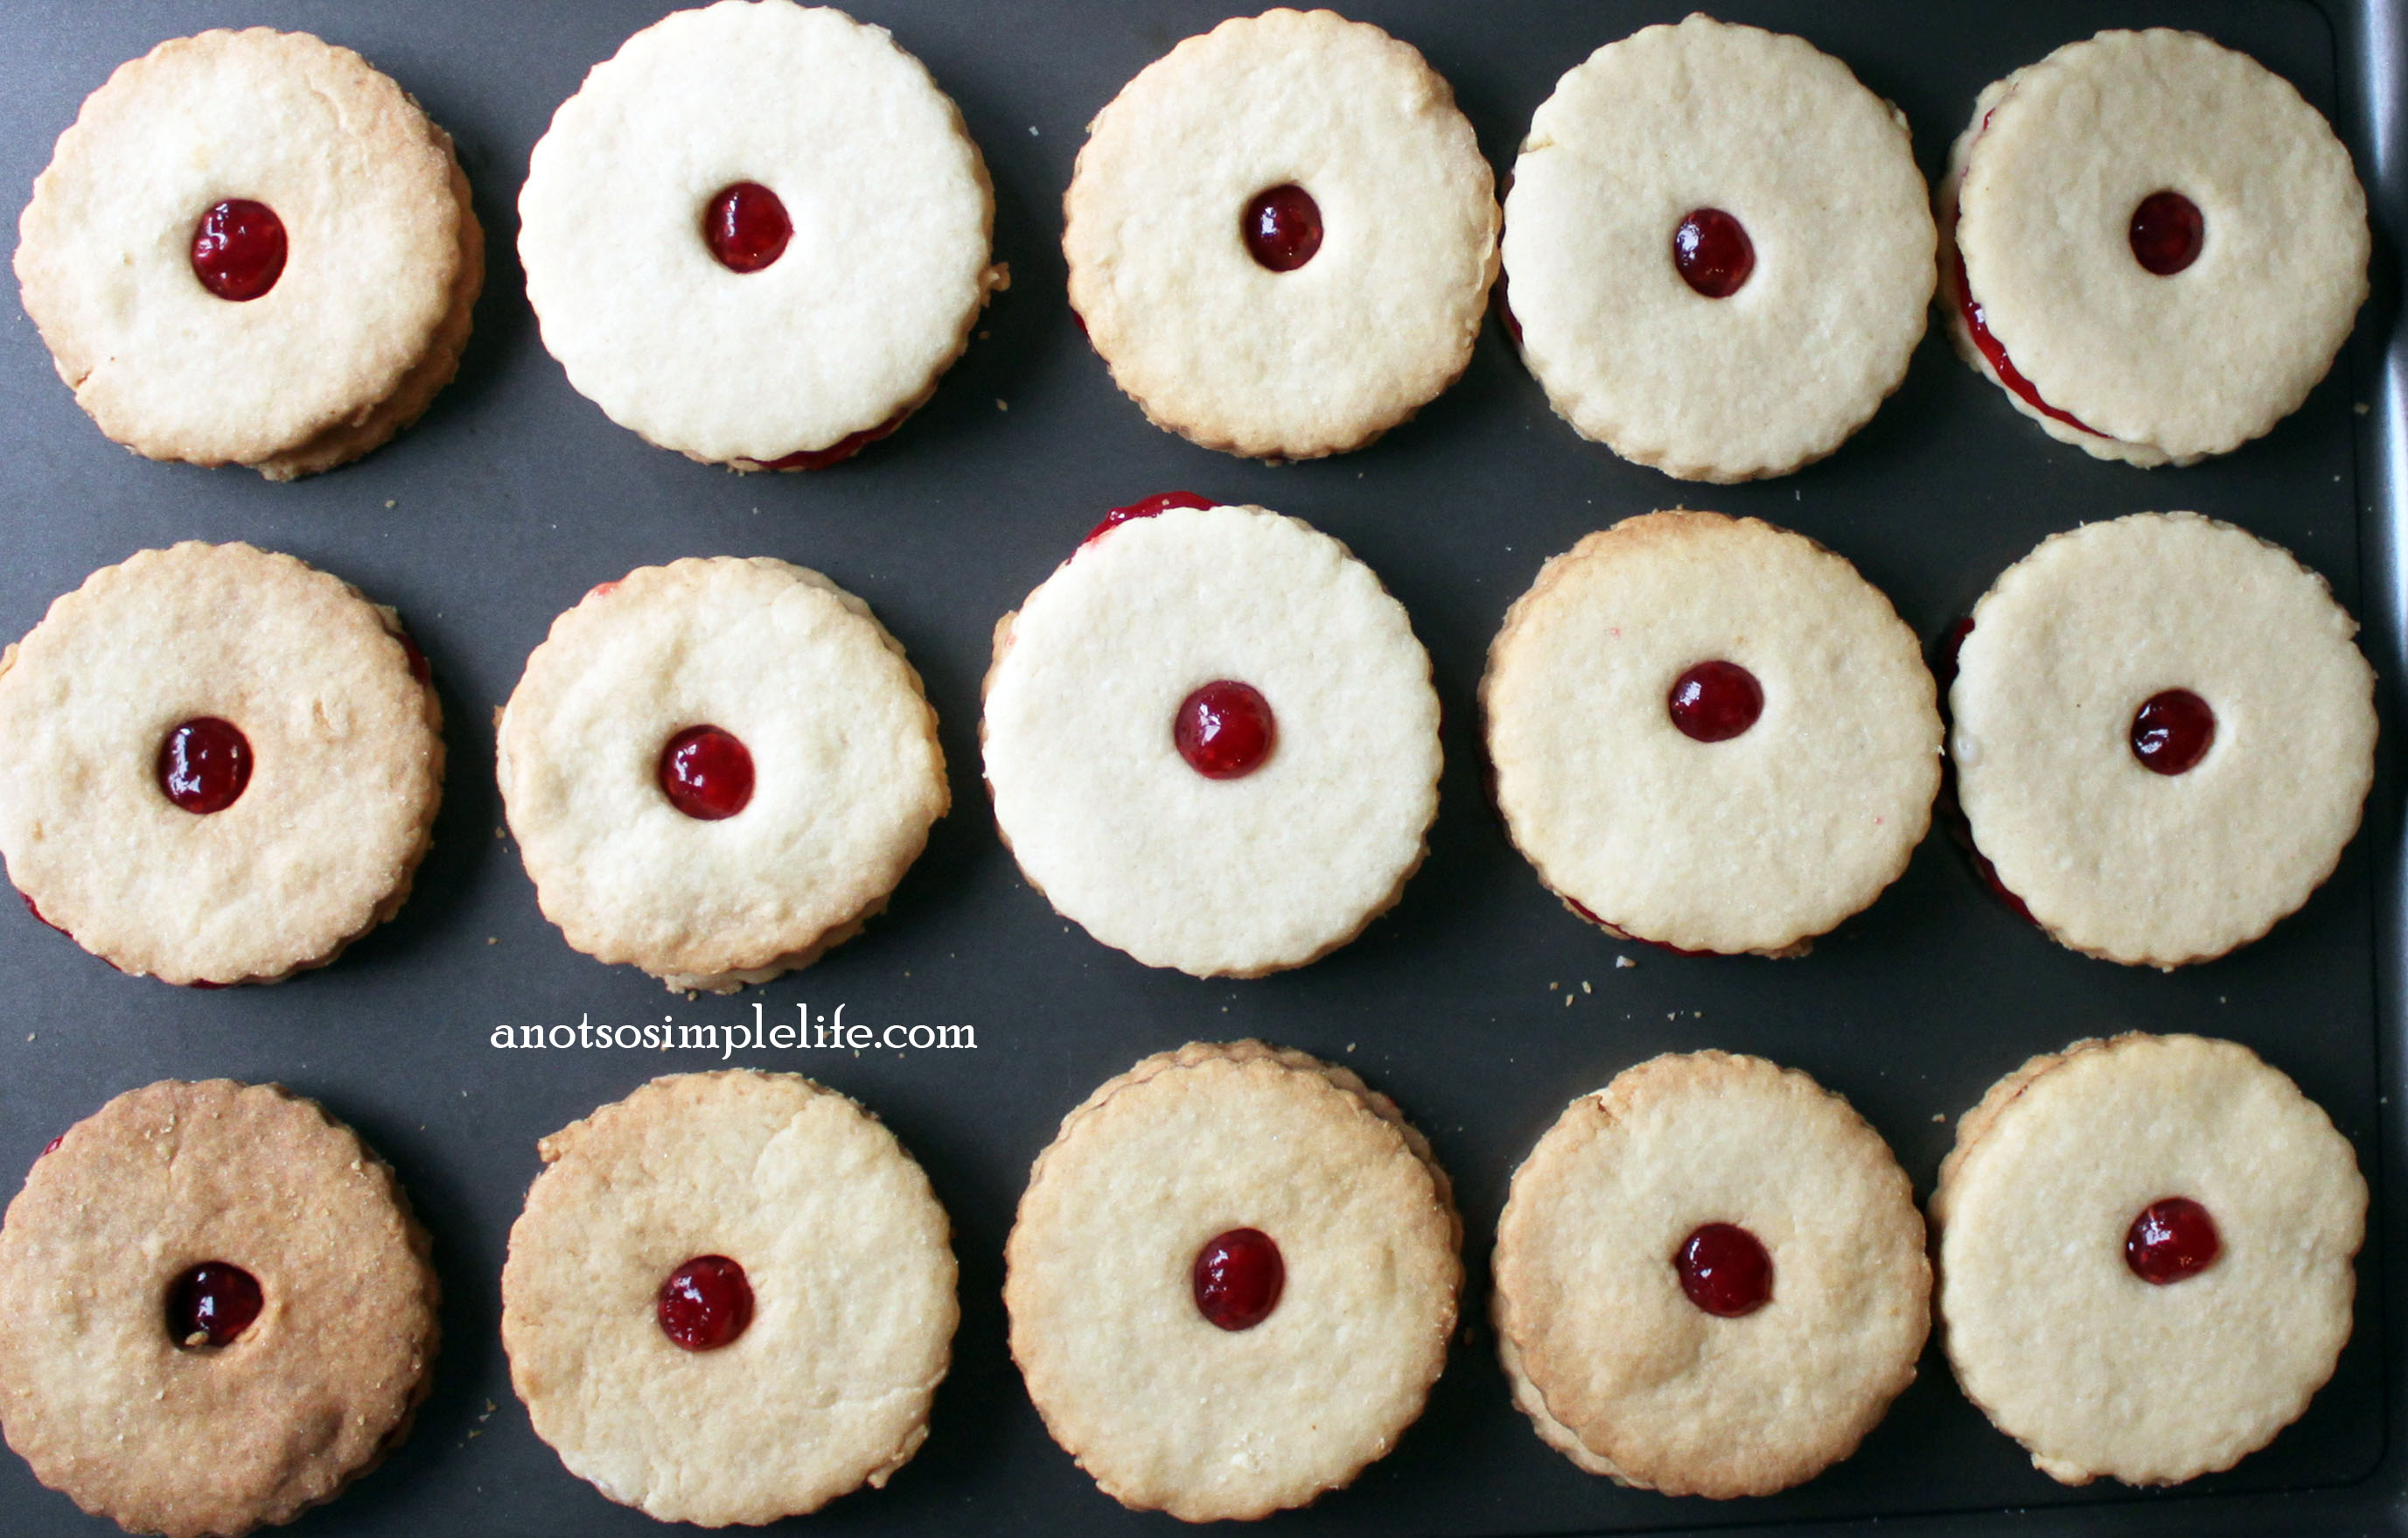 Raspberry Linzers Allergy Friendly Cookies; Gluten Free, Dairy Free, Soy Free, Nut Free, Egg Free Recipe